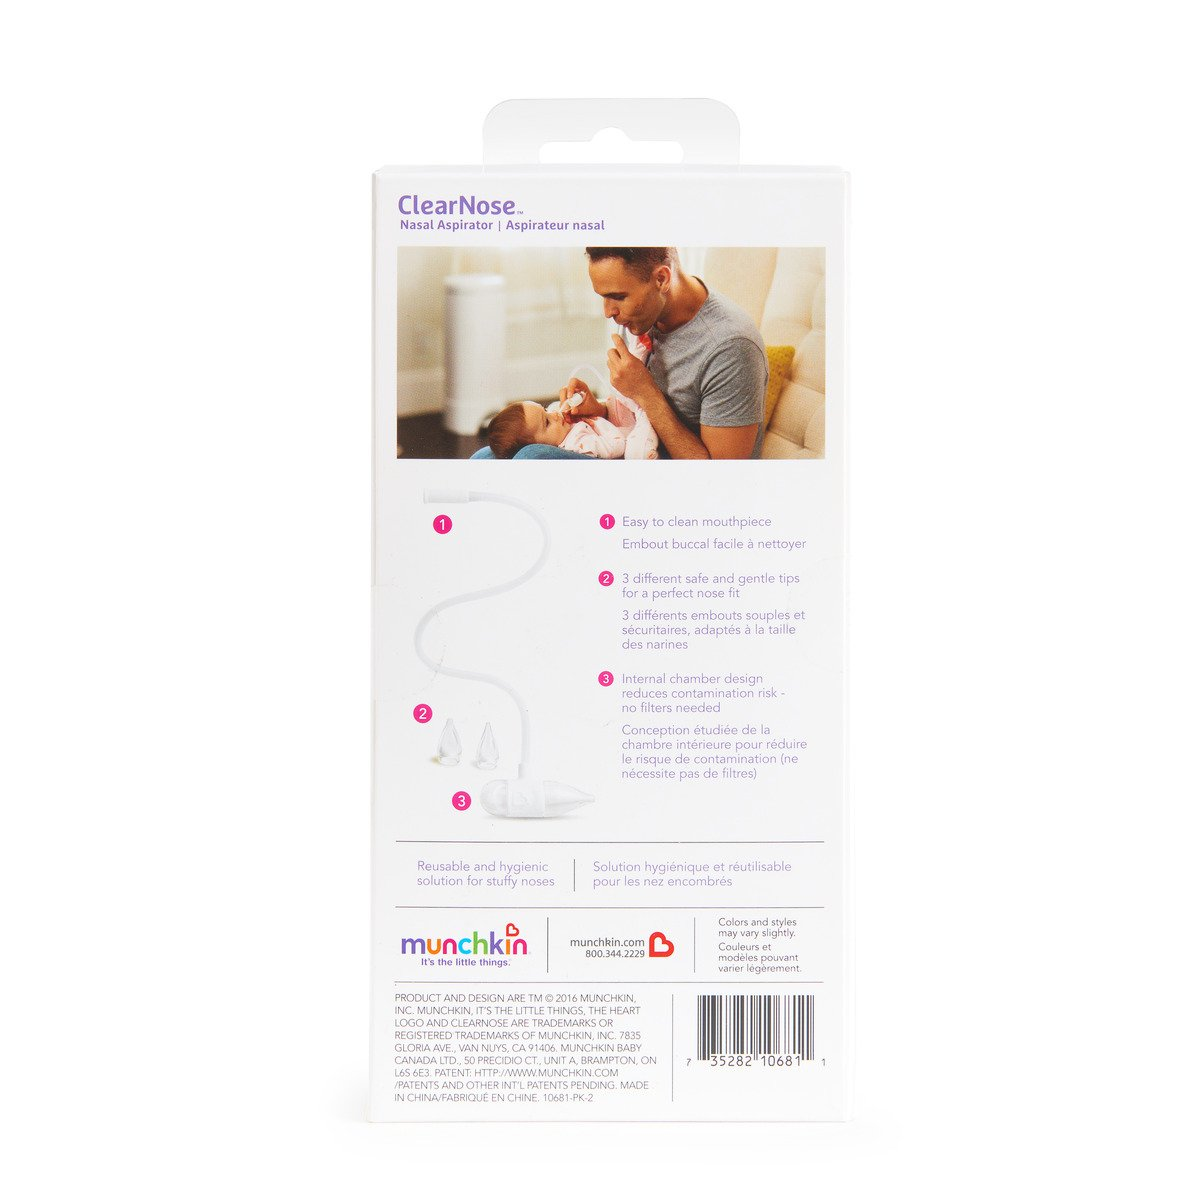 Munchkin Clear Nose Baby Nasal Aspirator, Hygienic Snot Sucker for Stuffy Noses, White